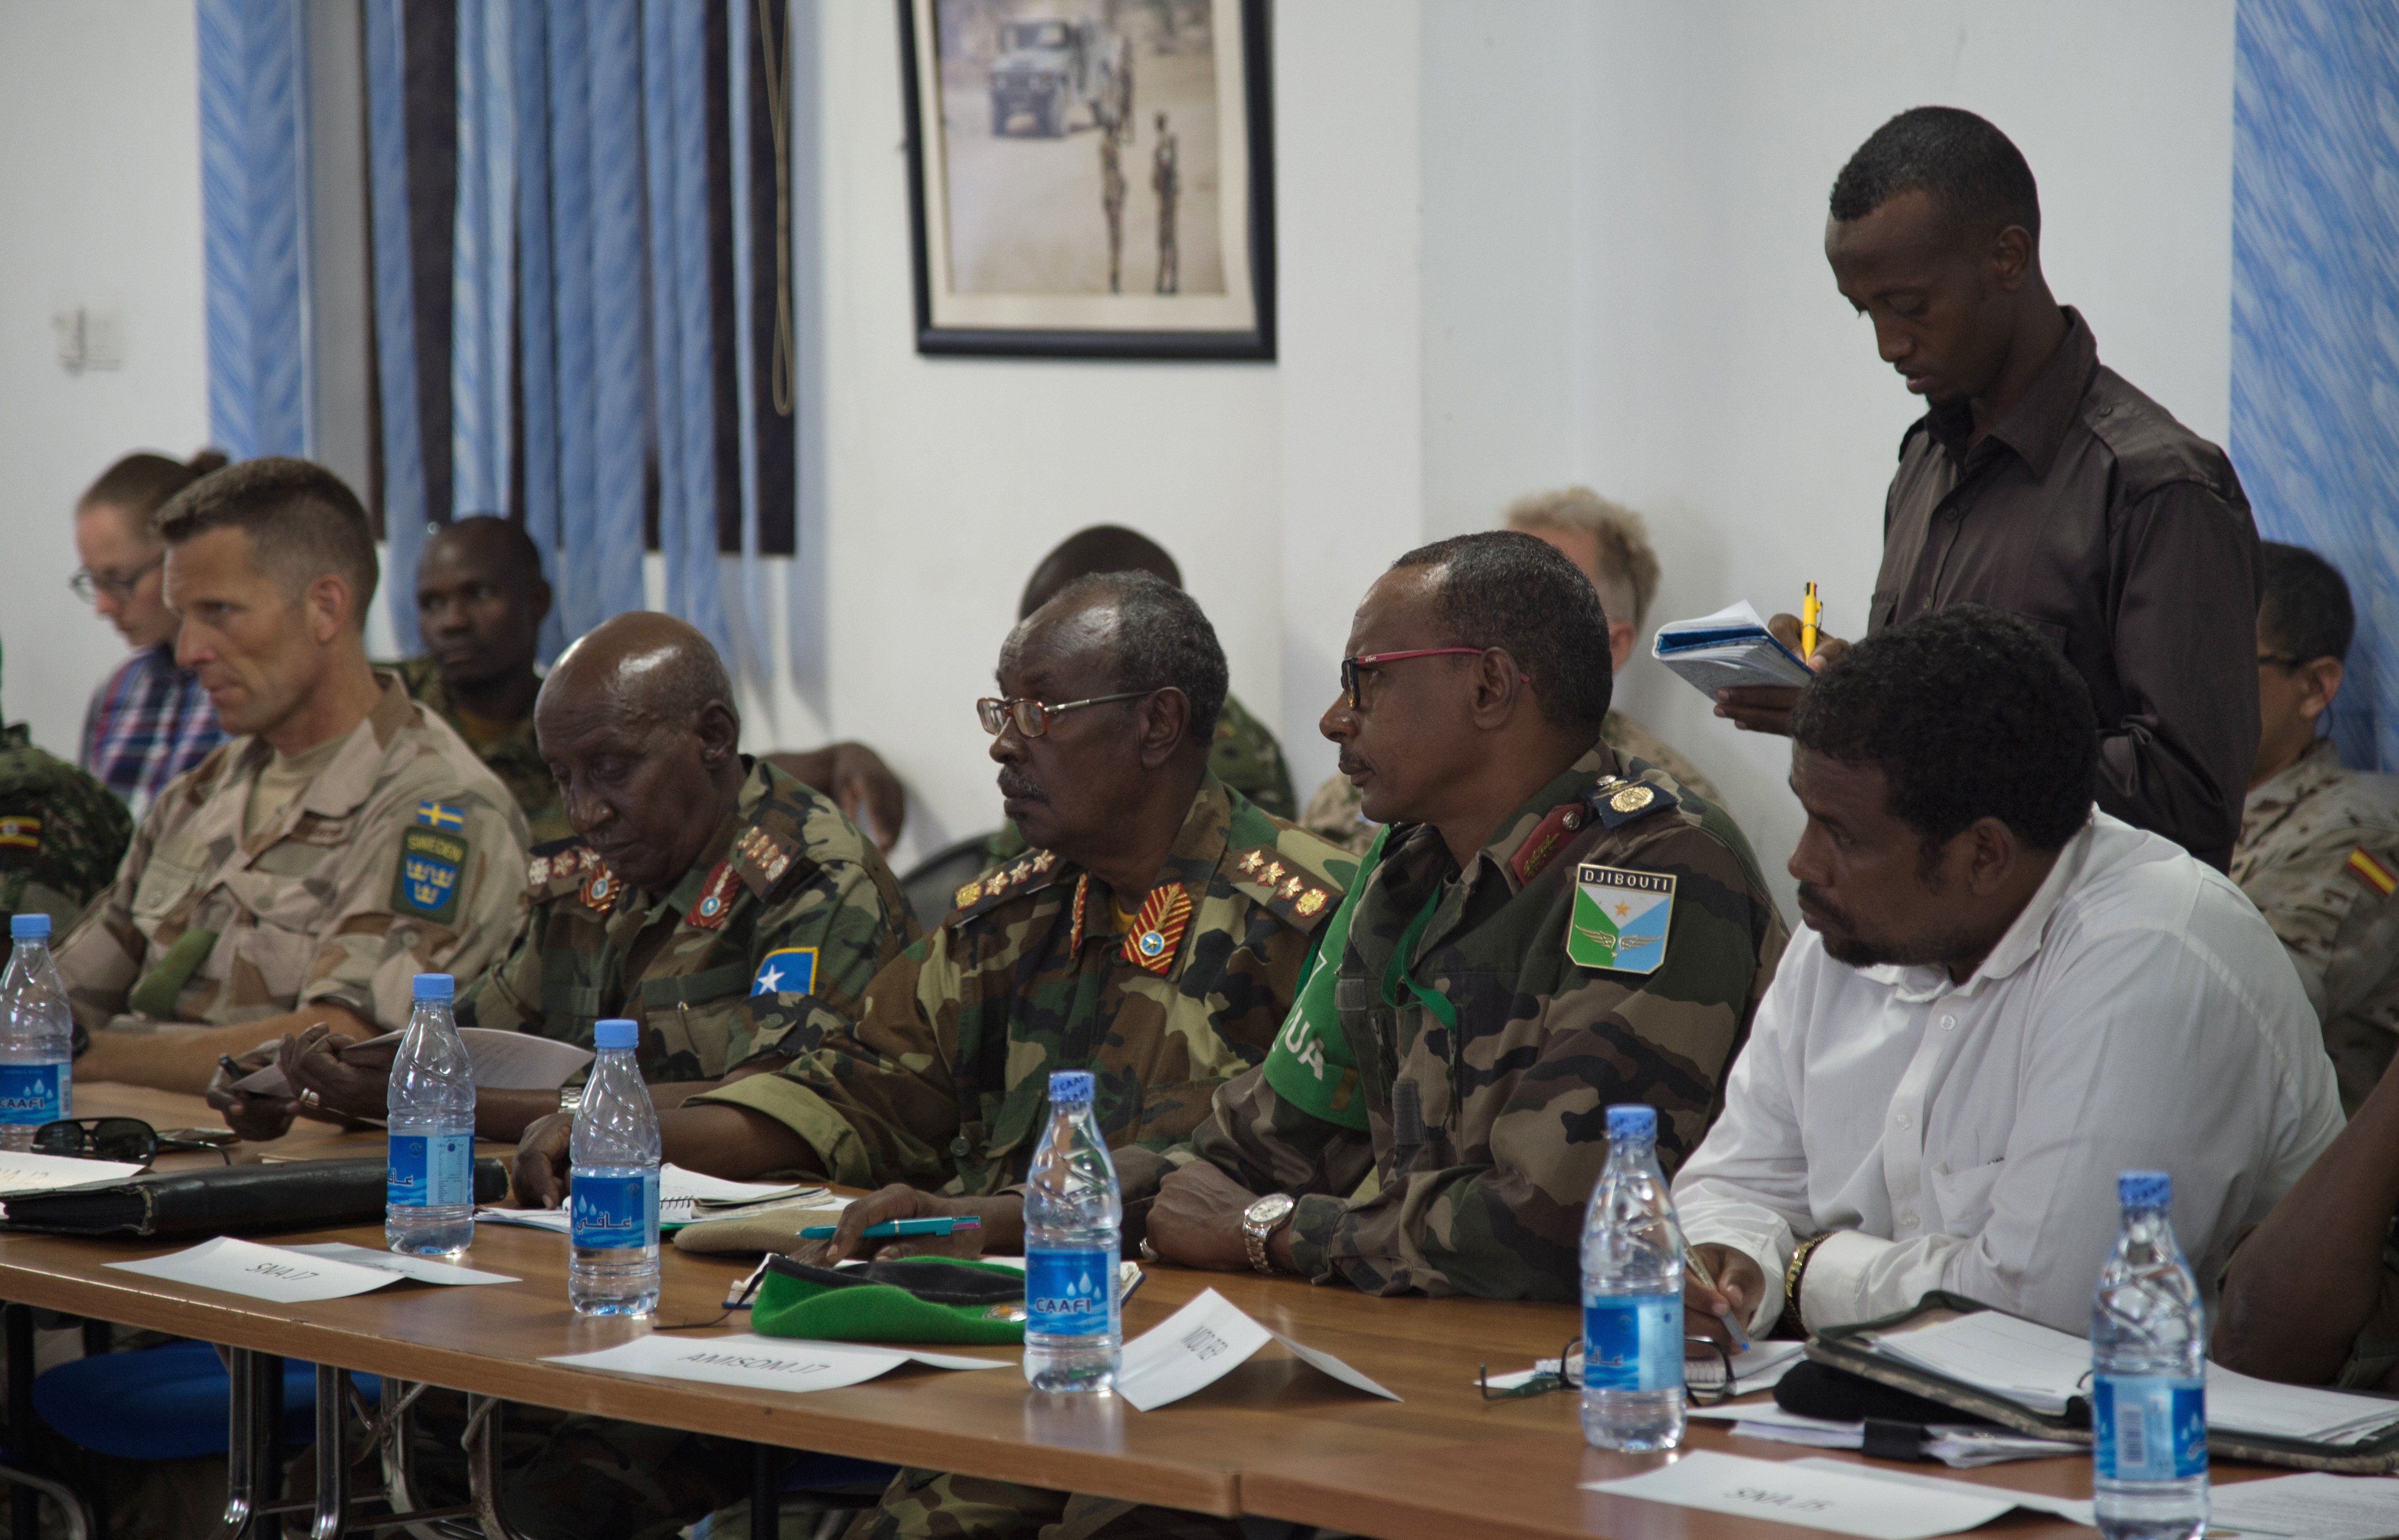 Leaders of the Somali National Army meet with international military and civilian officials to discuss the future of Somalia's security at the SNA Symposium in downtown Mogadishu, Jan. 11, 2017. More than 60 participants attended the two-day event, including representatives from Denmark, Germany, Italy, Somalia, Turkey, Uganda, the United Arab Emirates, United Kingdom and the United States of America. Also in attendance, were representatives from international organizations such as the United Nations, European Union Training Mission, and the African Union Mission in Somalia. (Photo by  Master Sgt. Paul Gorman/Released)